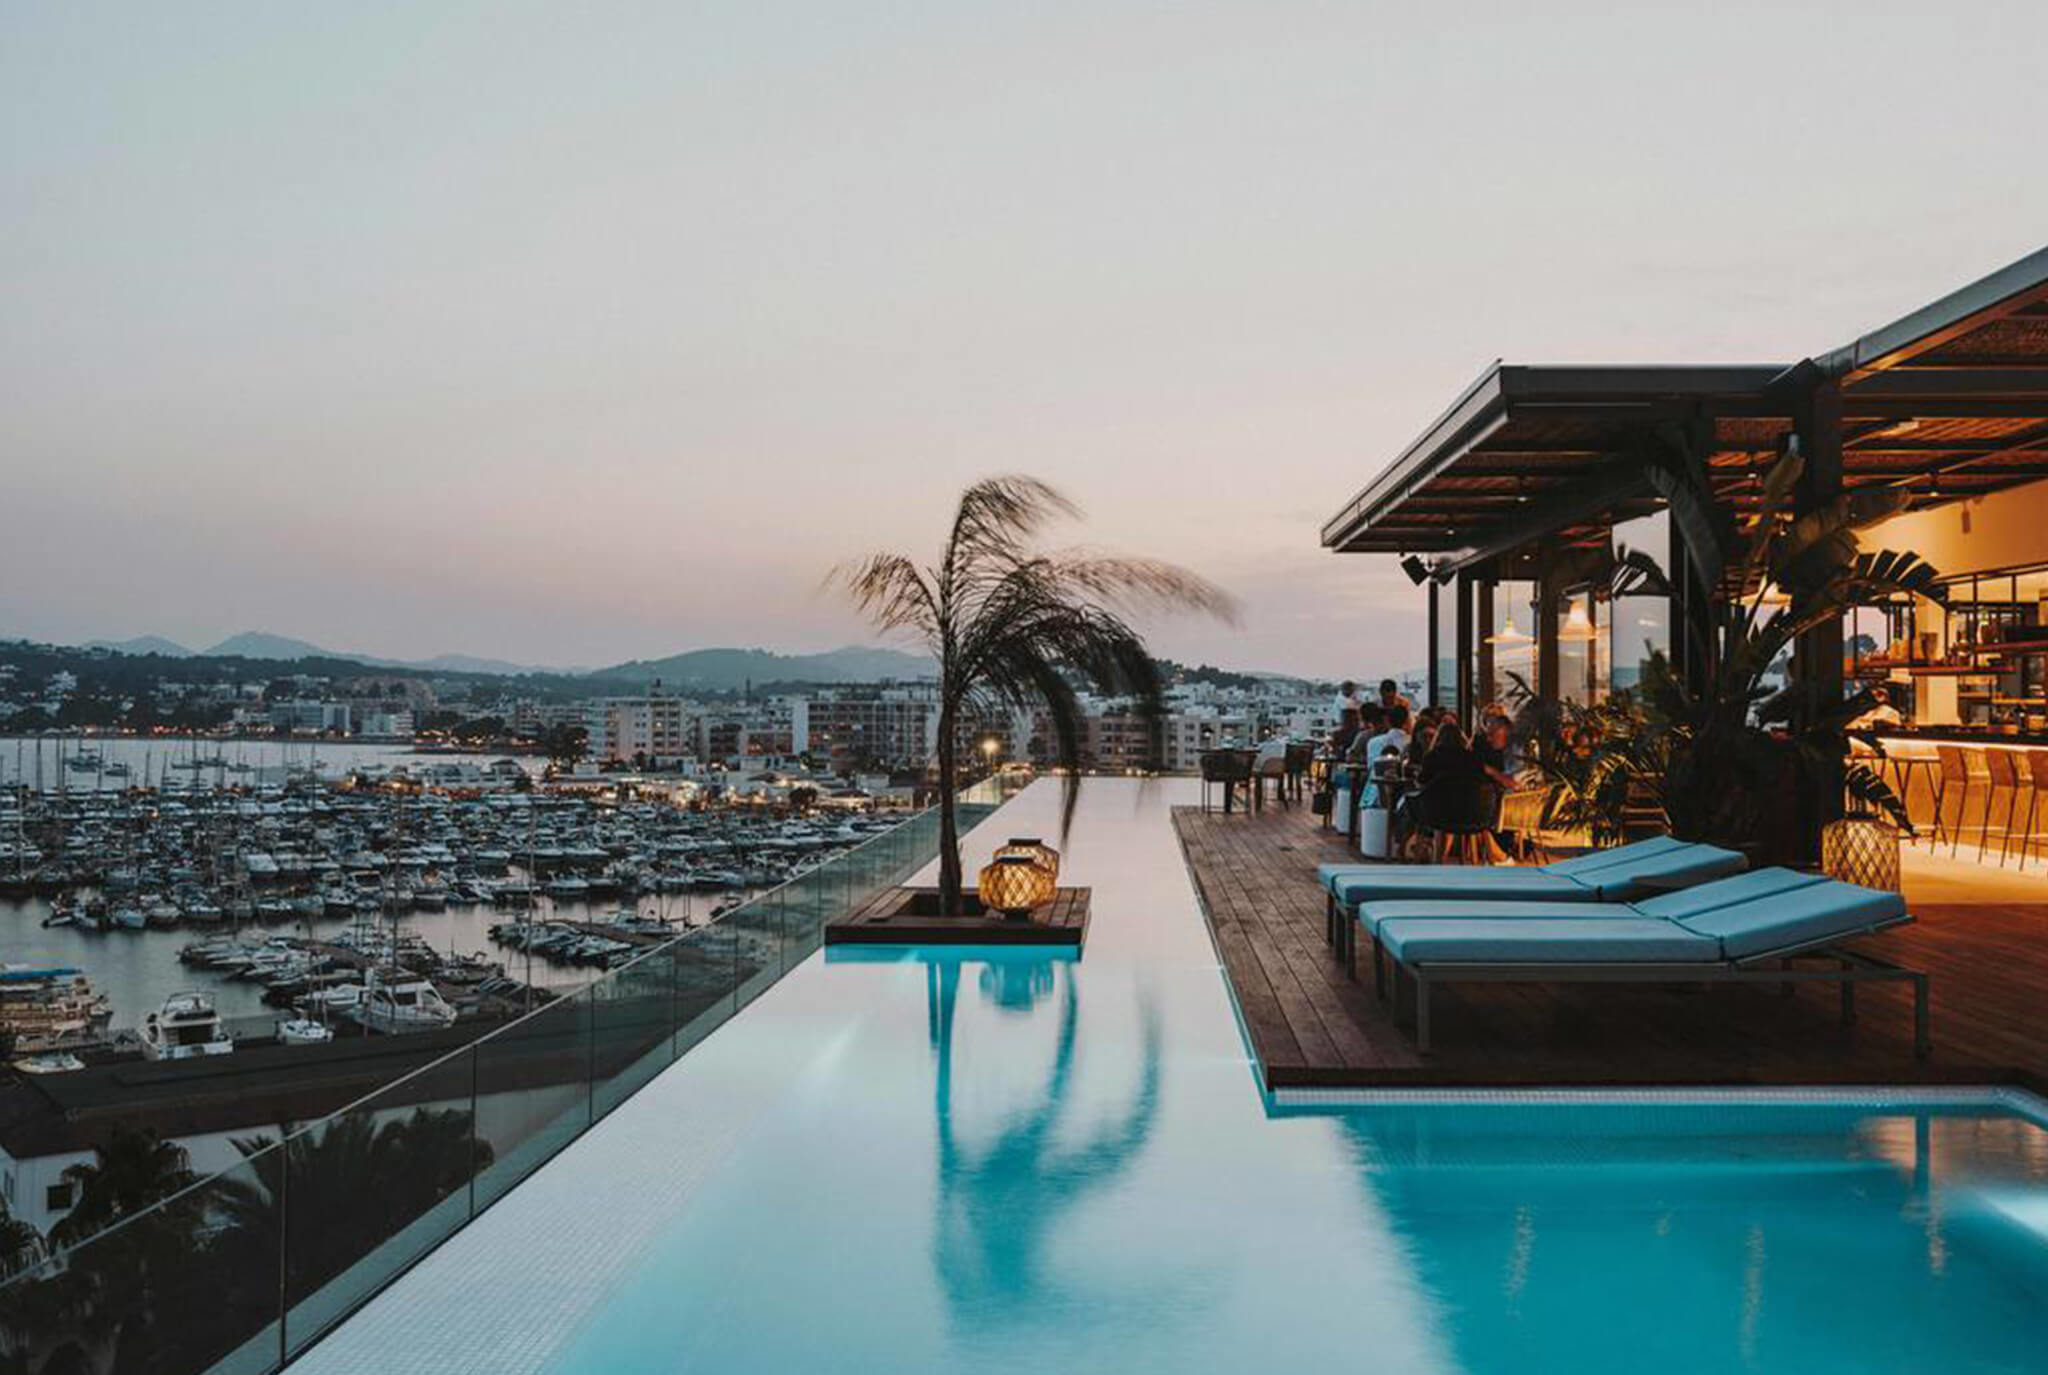 https://www.white-ibiza.com/wp-content/uploads/2020/03/white-ibiza-luxury-resorts-aguas-de-ibiza-2020-02.jpg